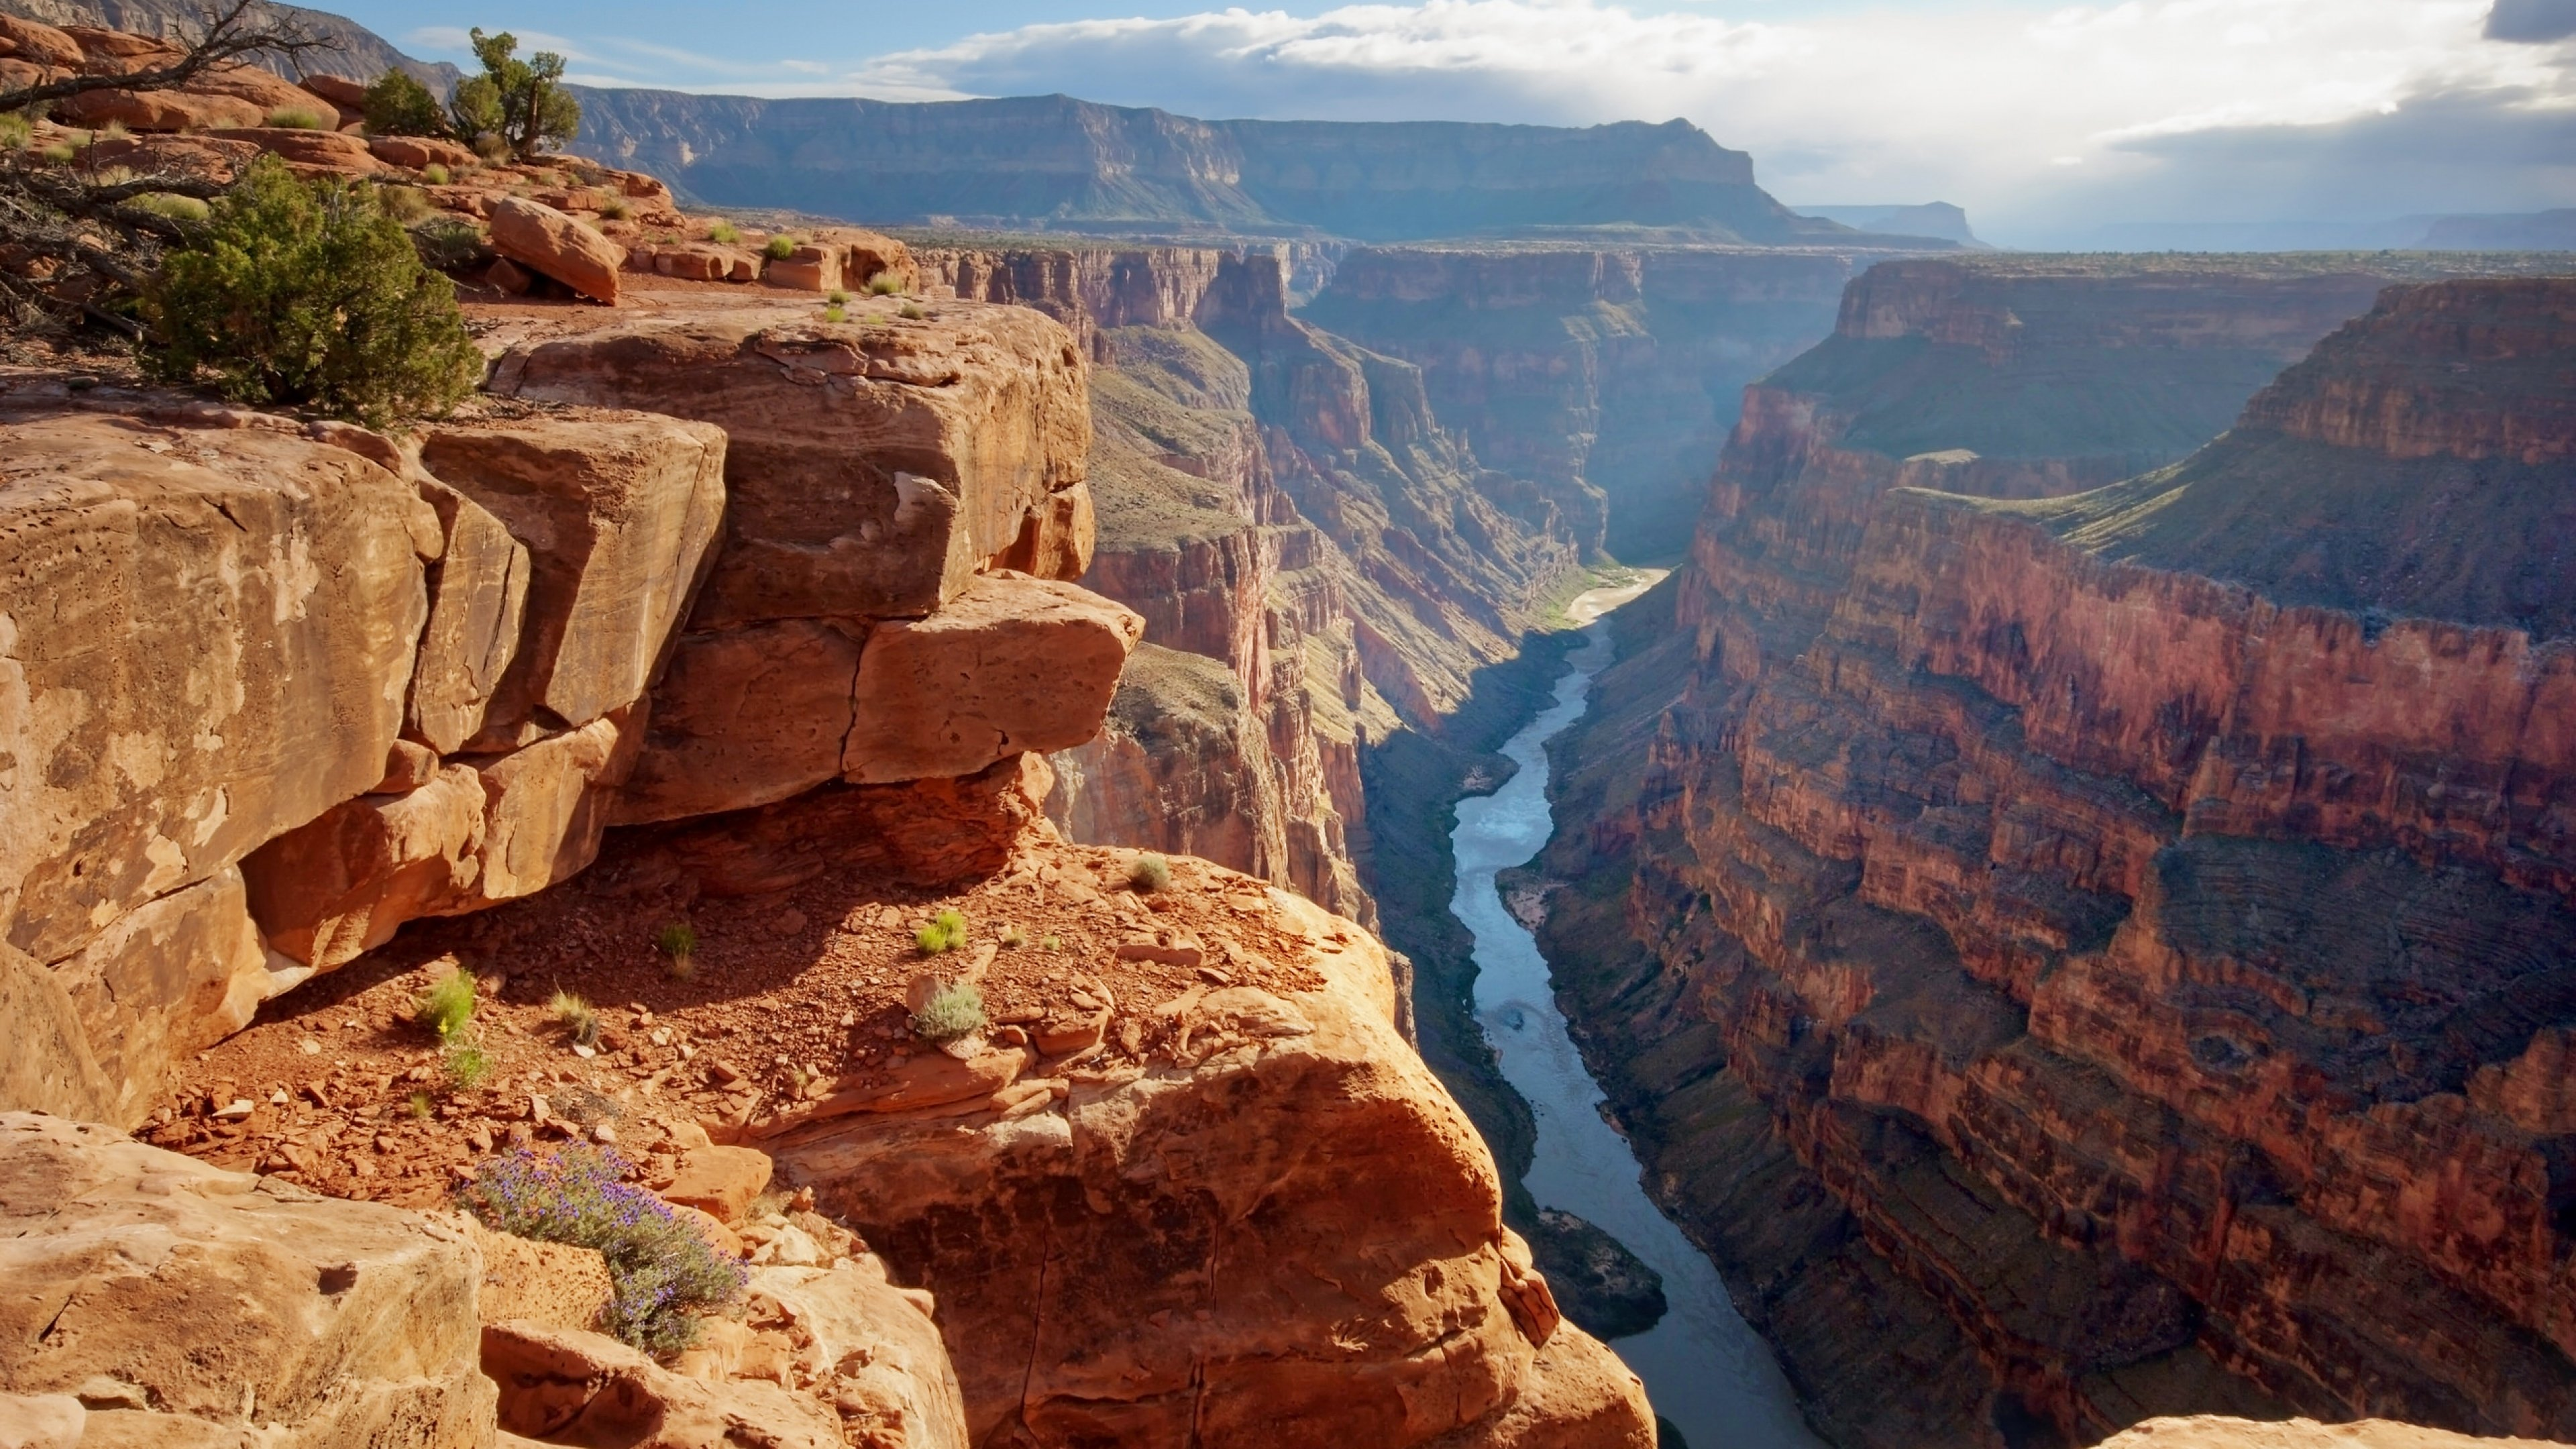 Colorado River running through Grand Canyon National Park